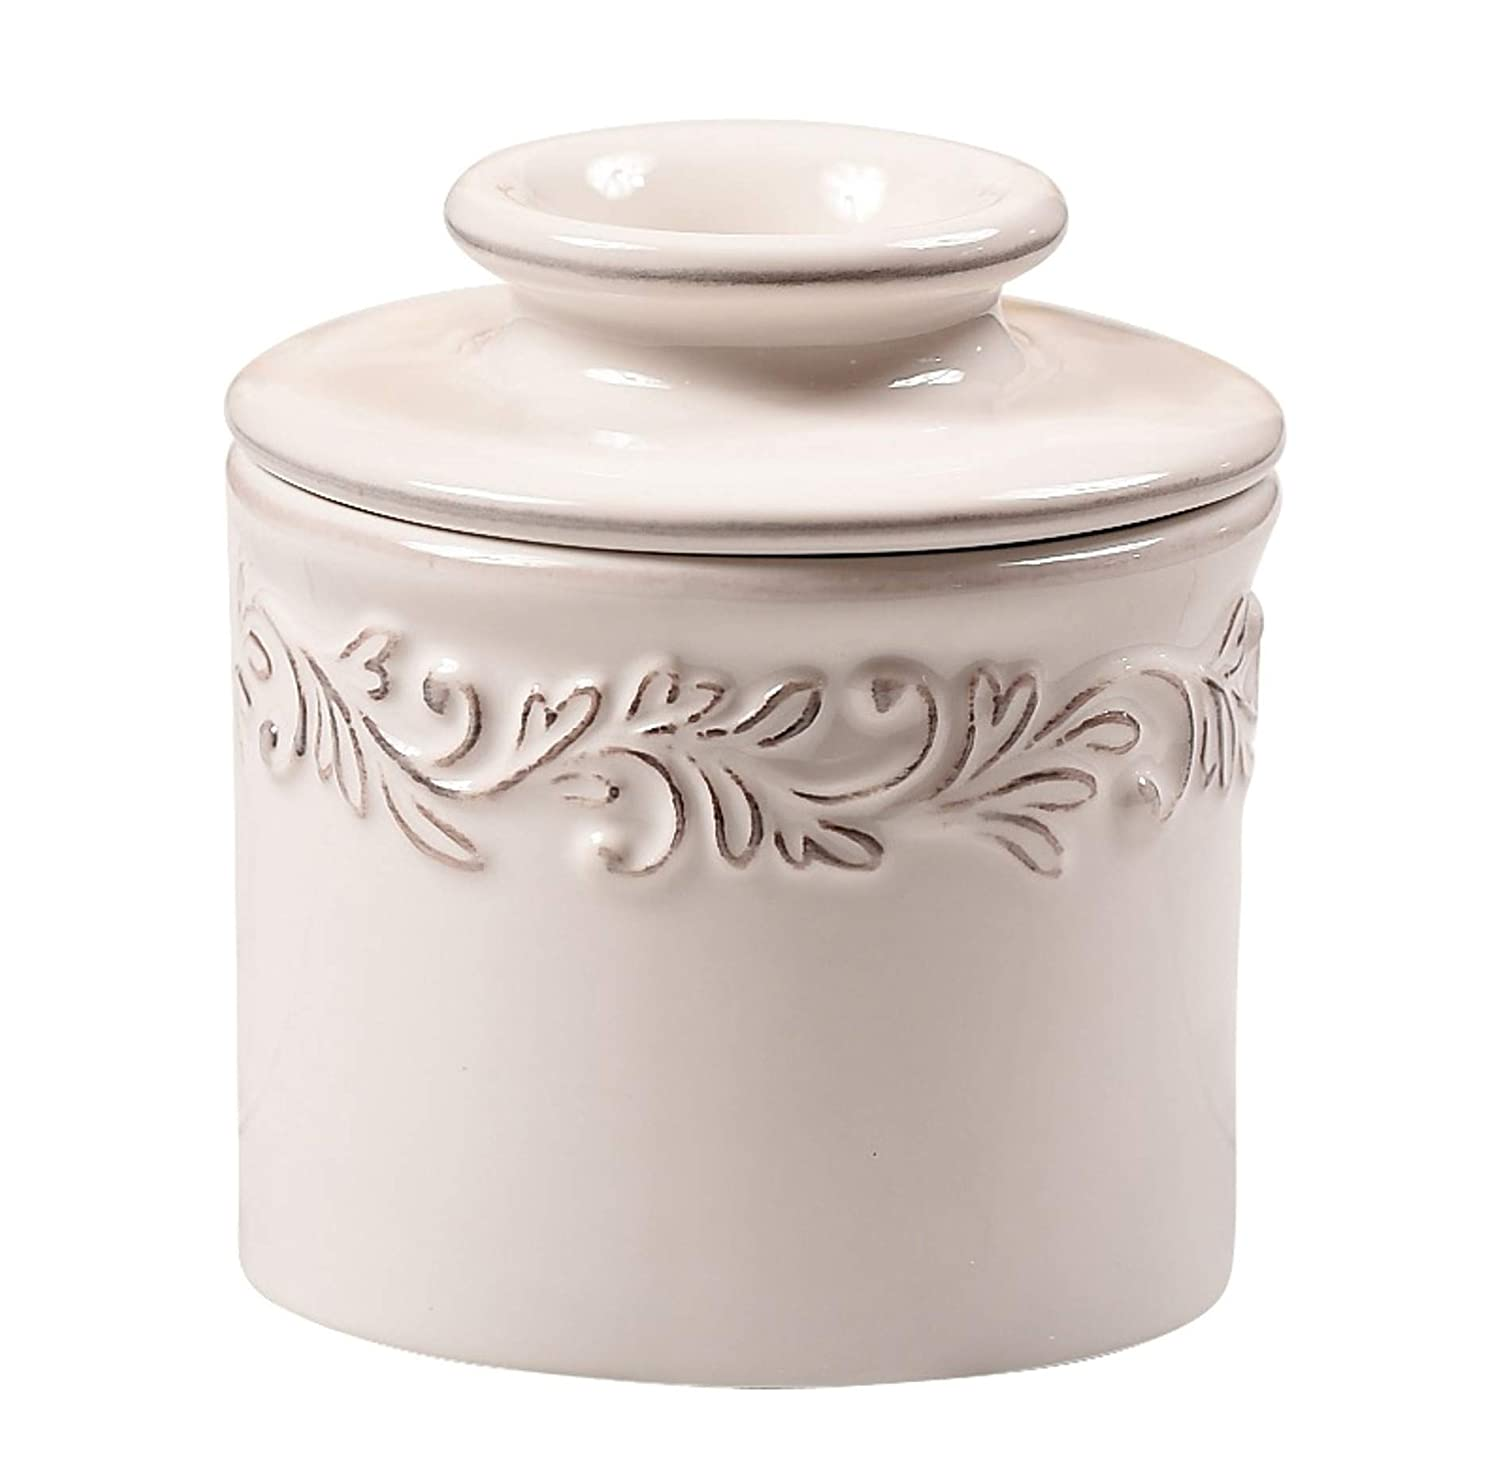 The Original Butter Bell Crock by L. Tremain, Antique Collection - White Linen